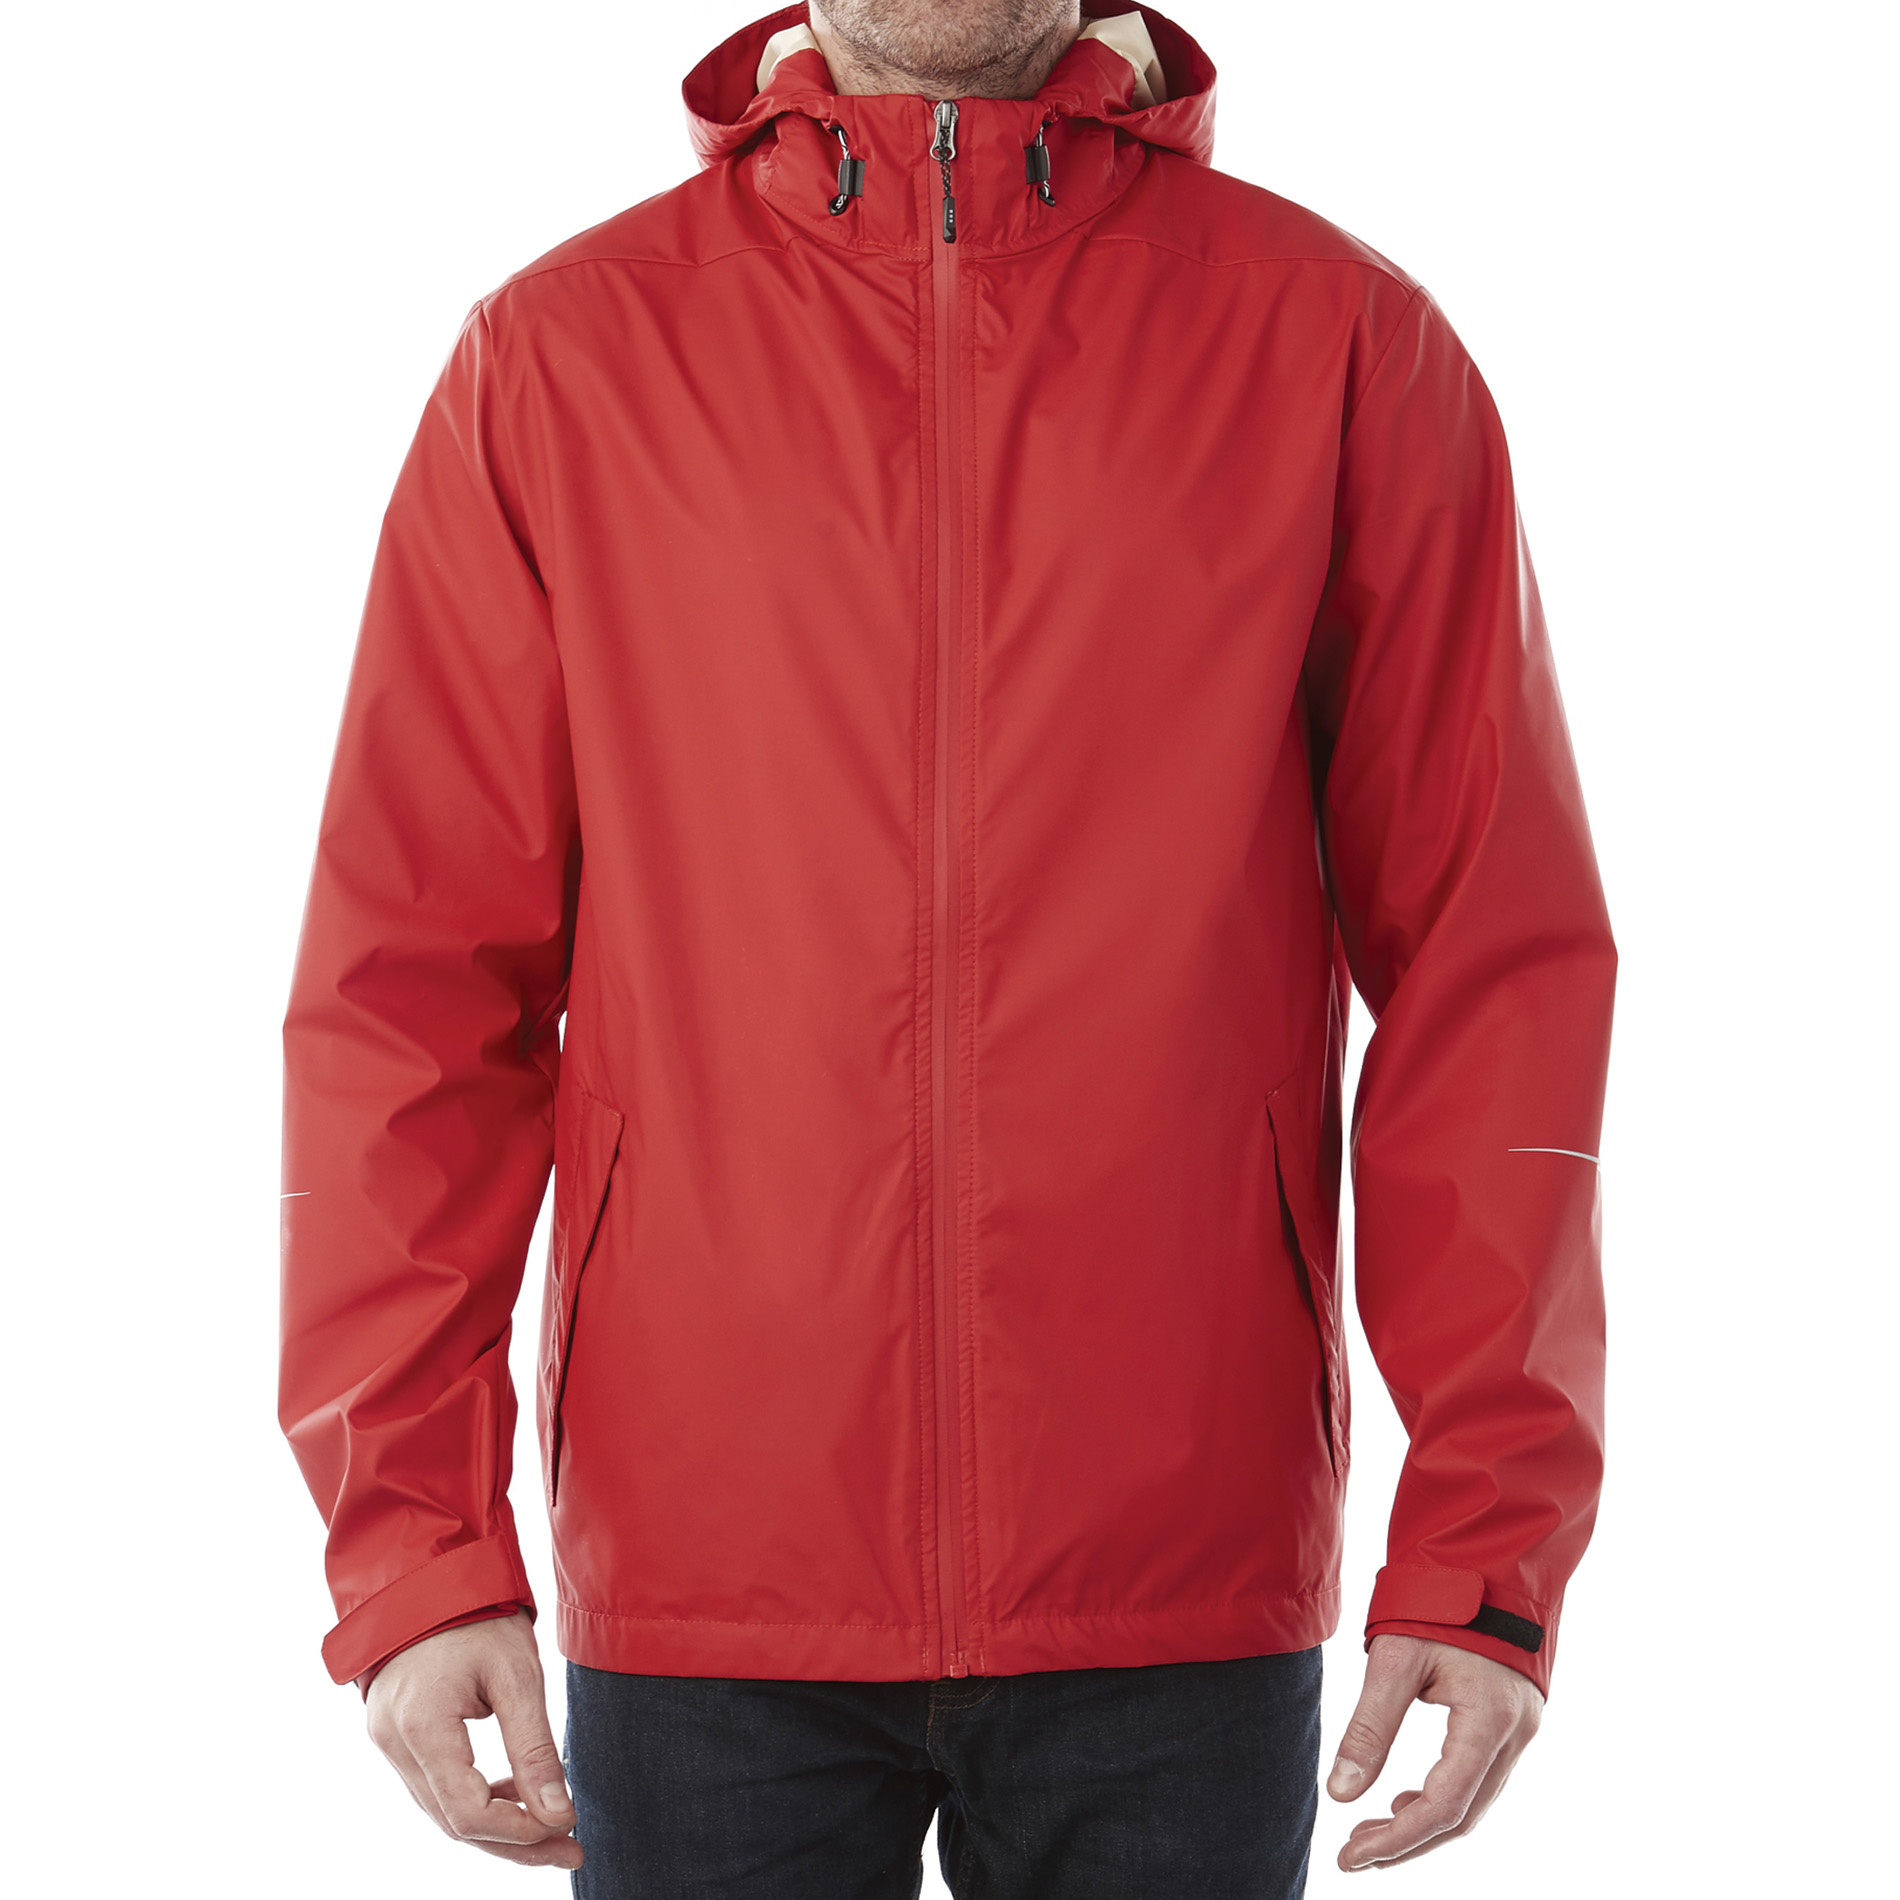 Elevate TM12713 - Men's CASCADE Rain Jacket